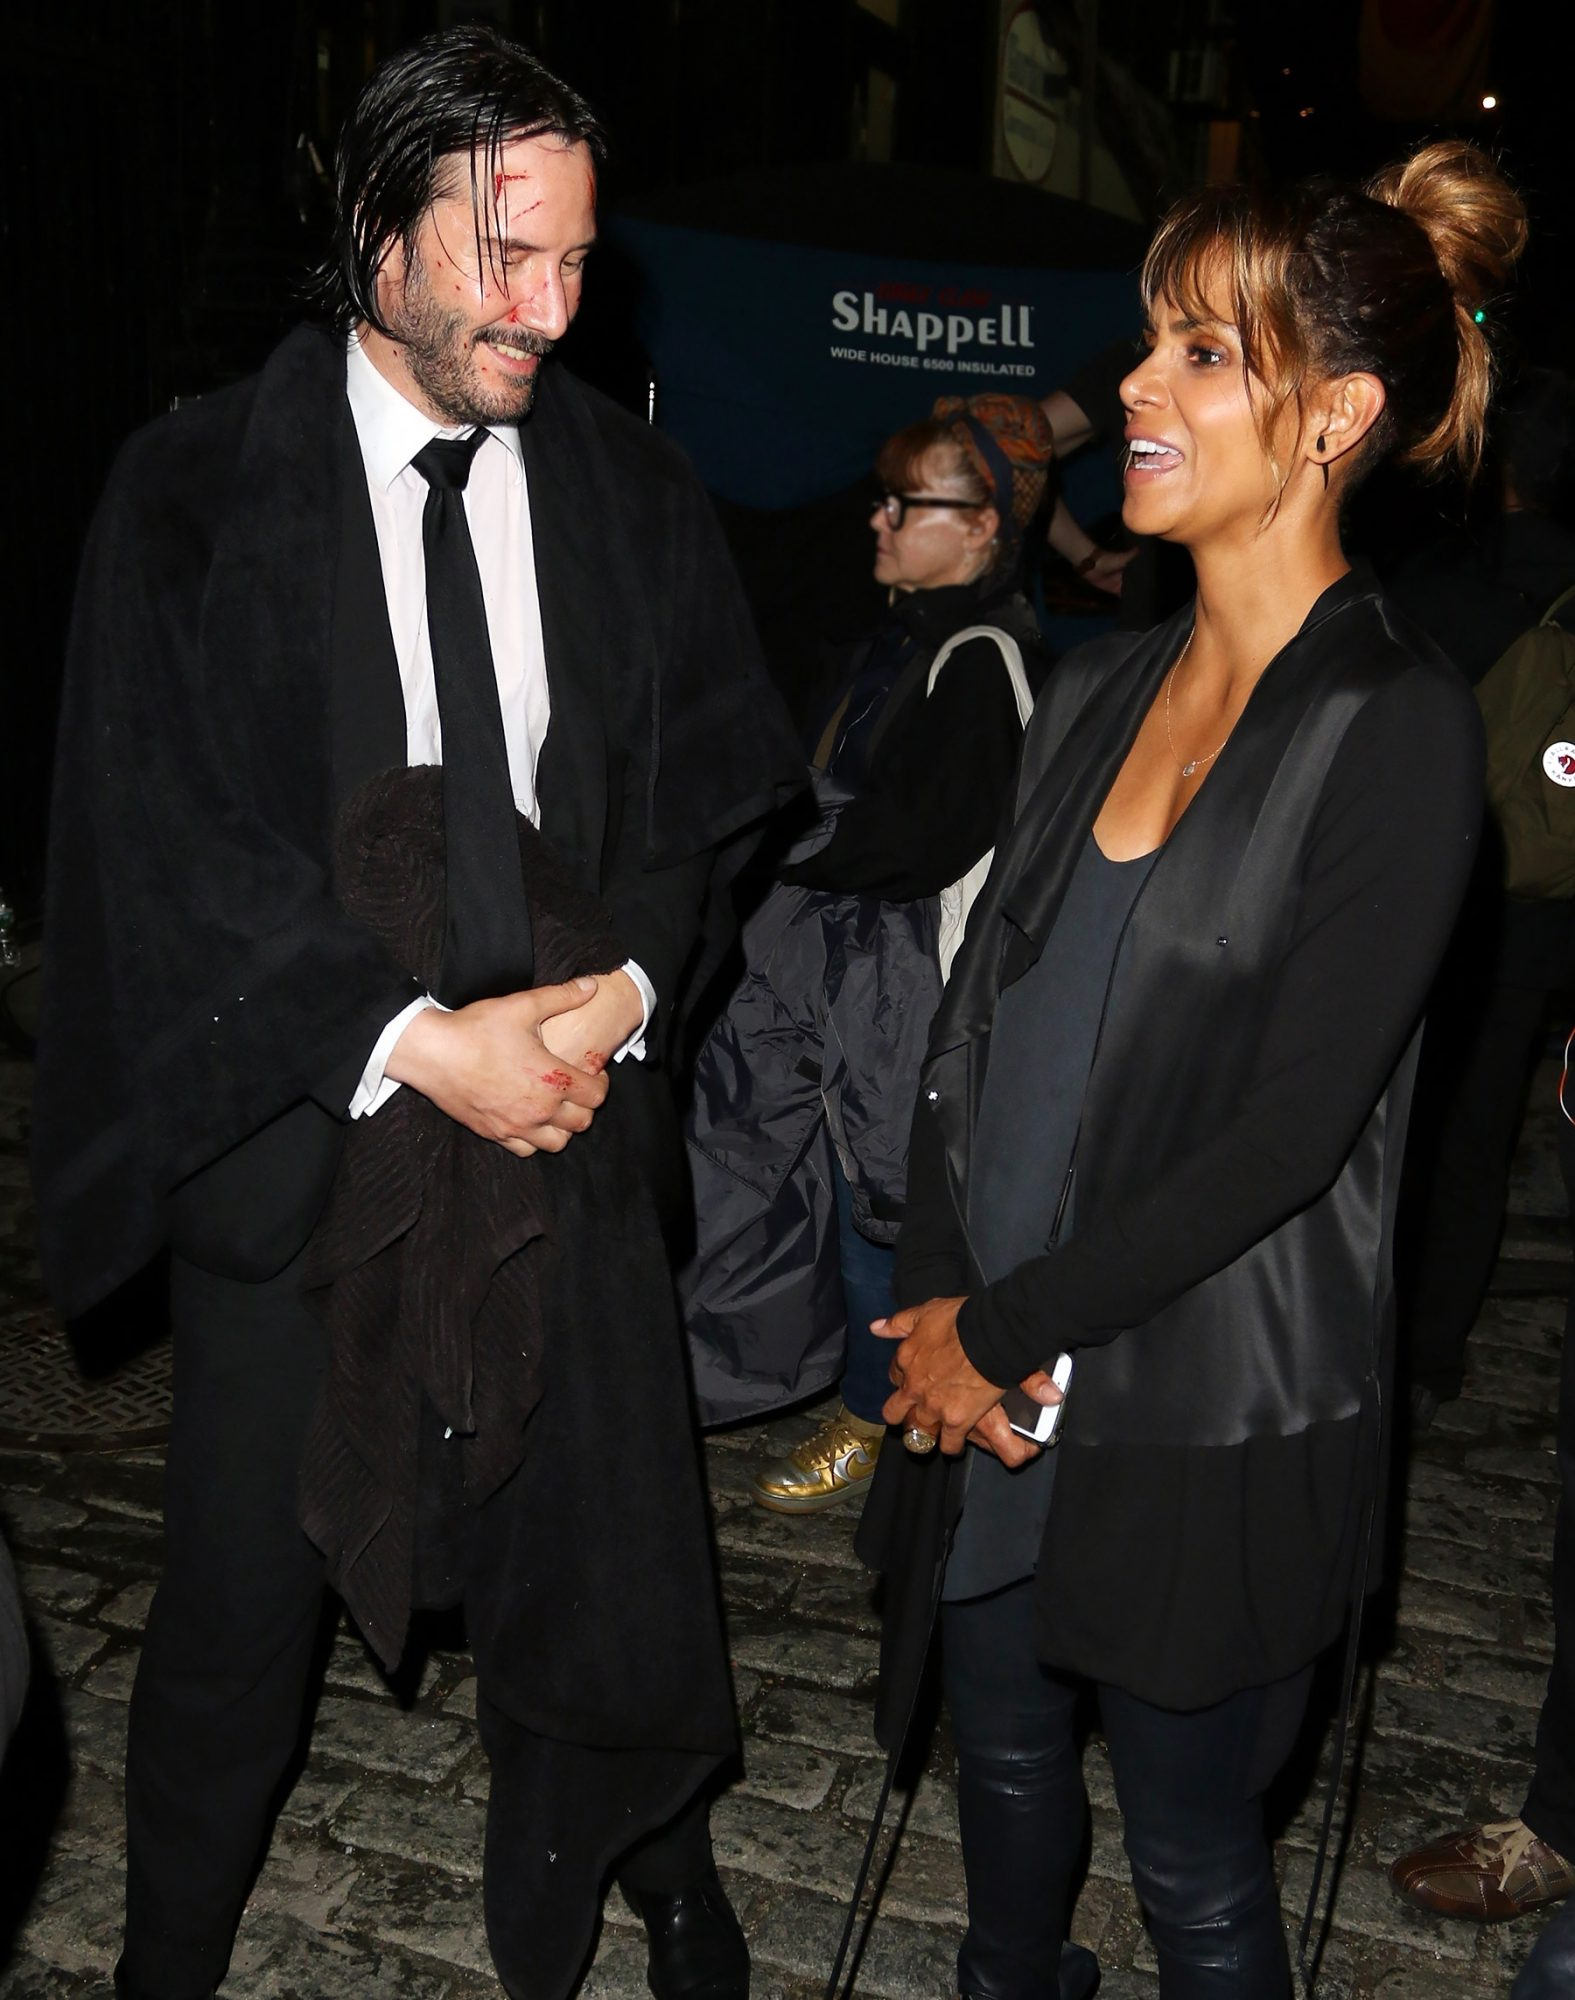 Halle Berry chats with Keanu Reeves on set of 'John Wick 3' during a late night of filming